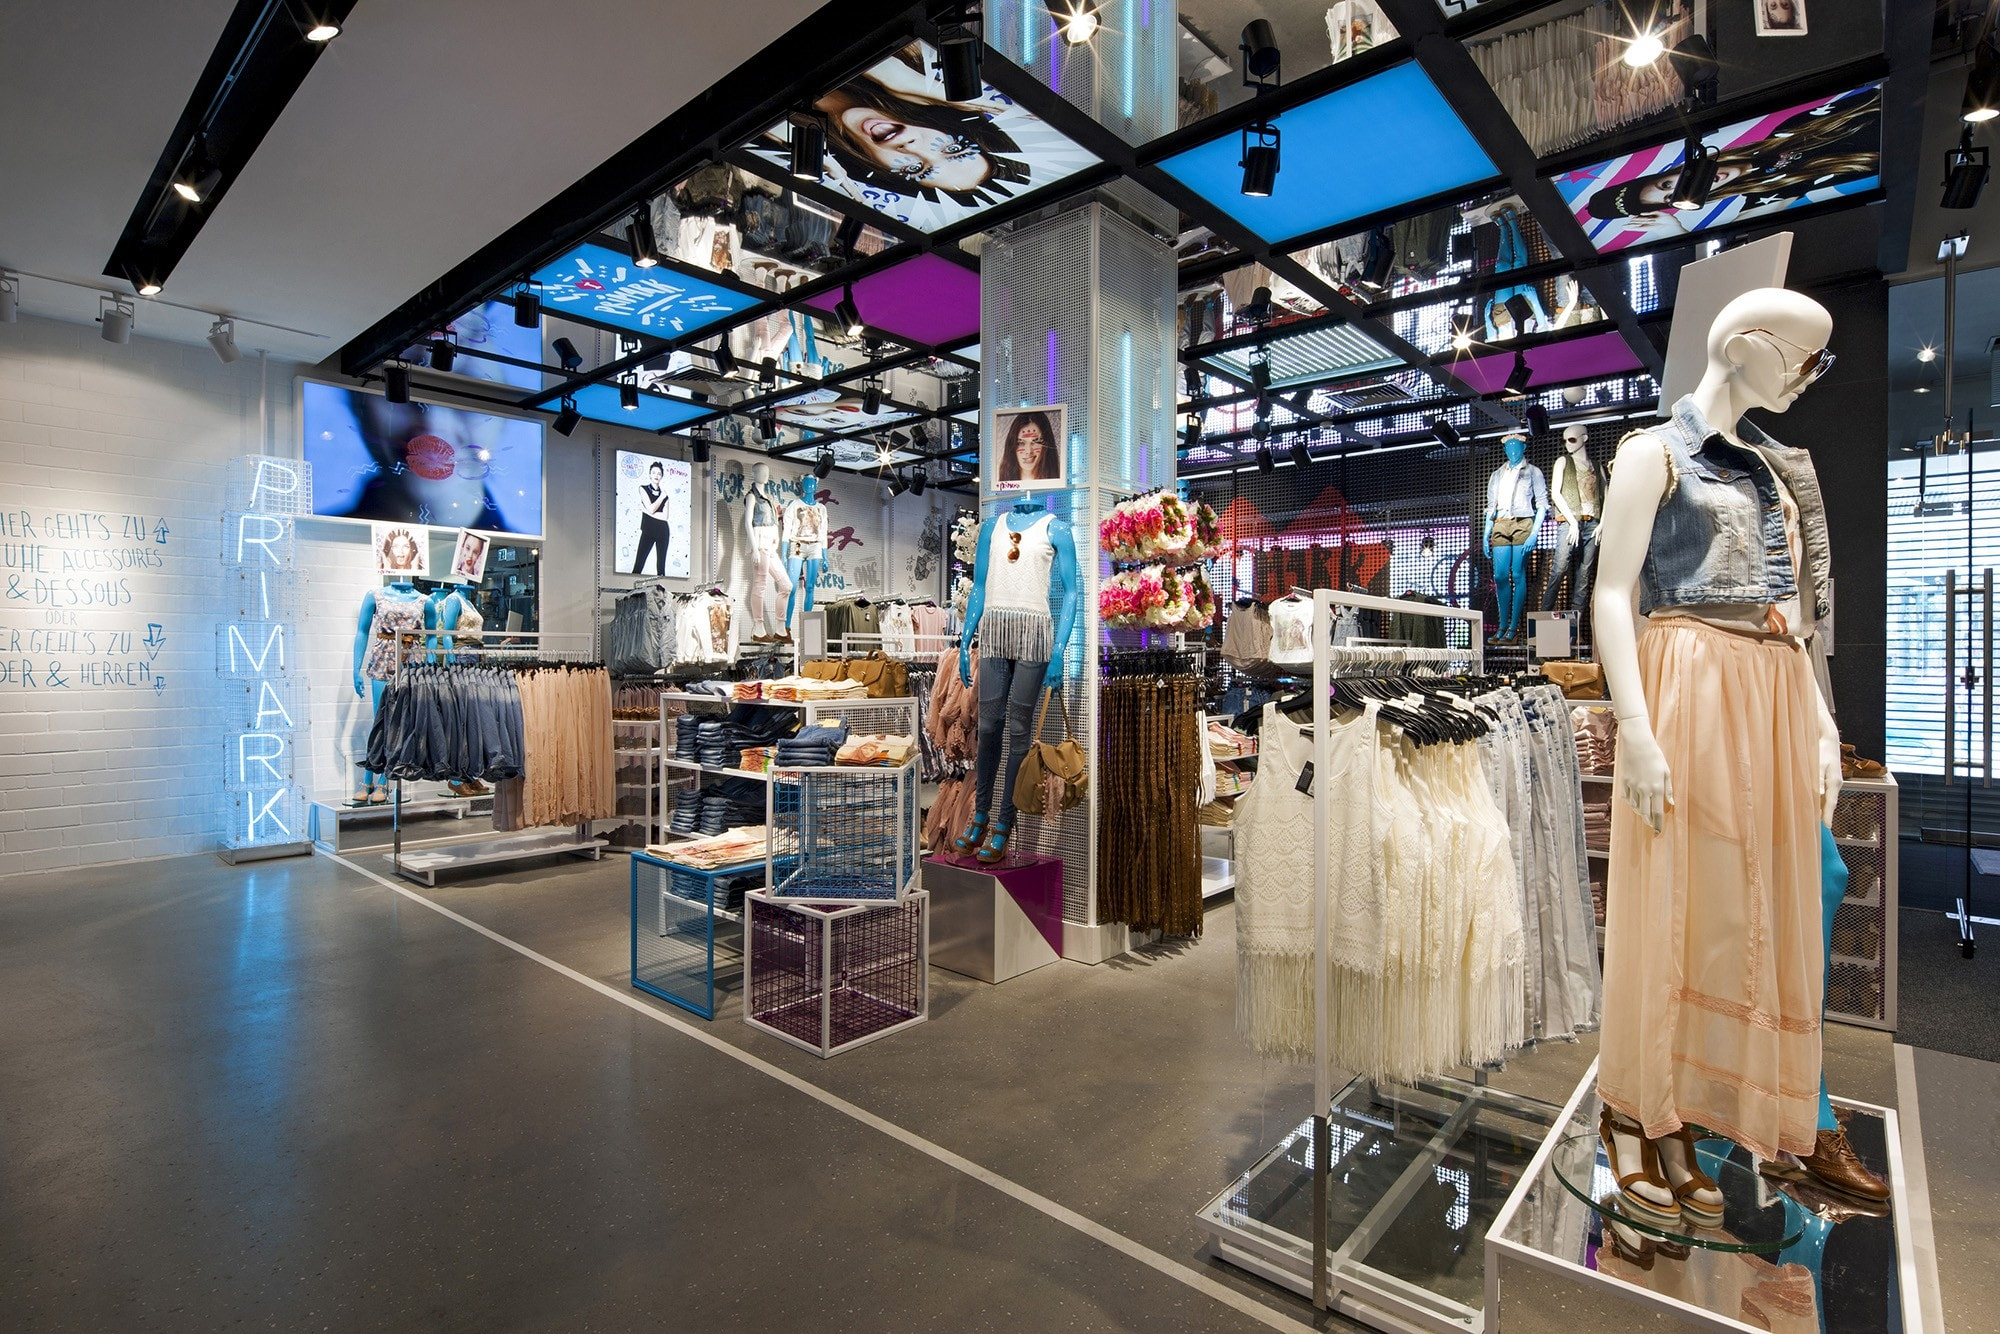 Primark women's clothing store with bright white and florescent lighting